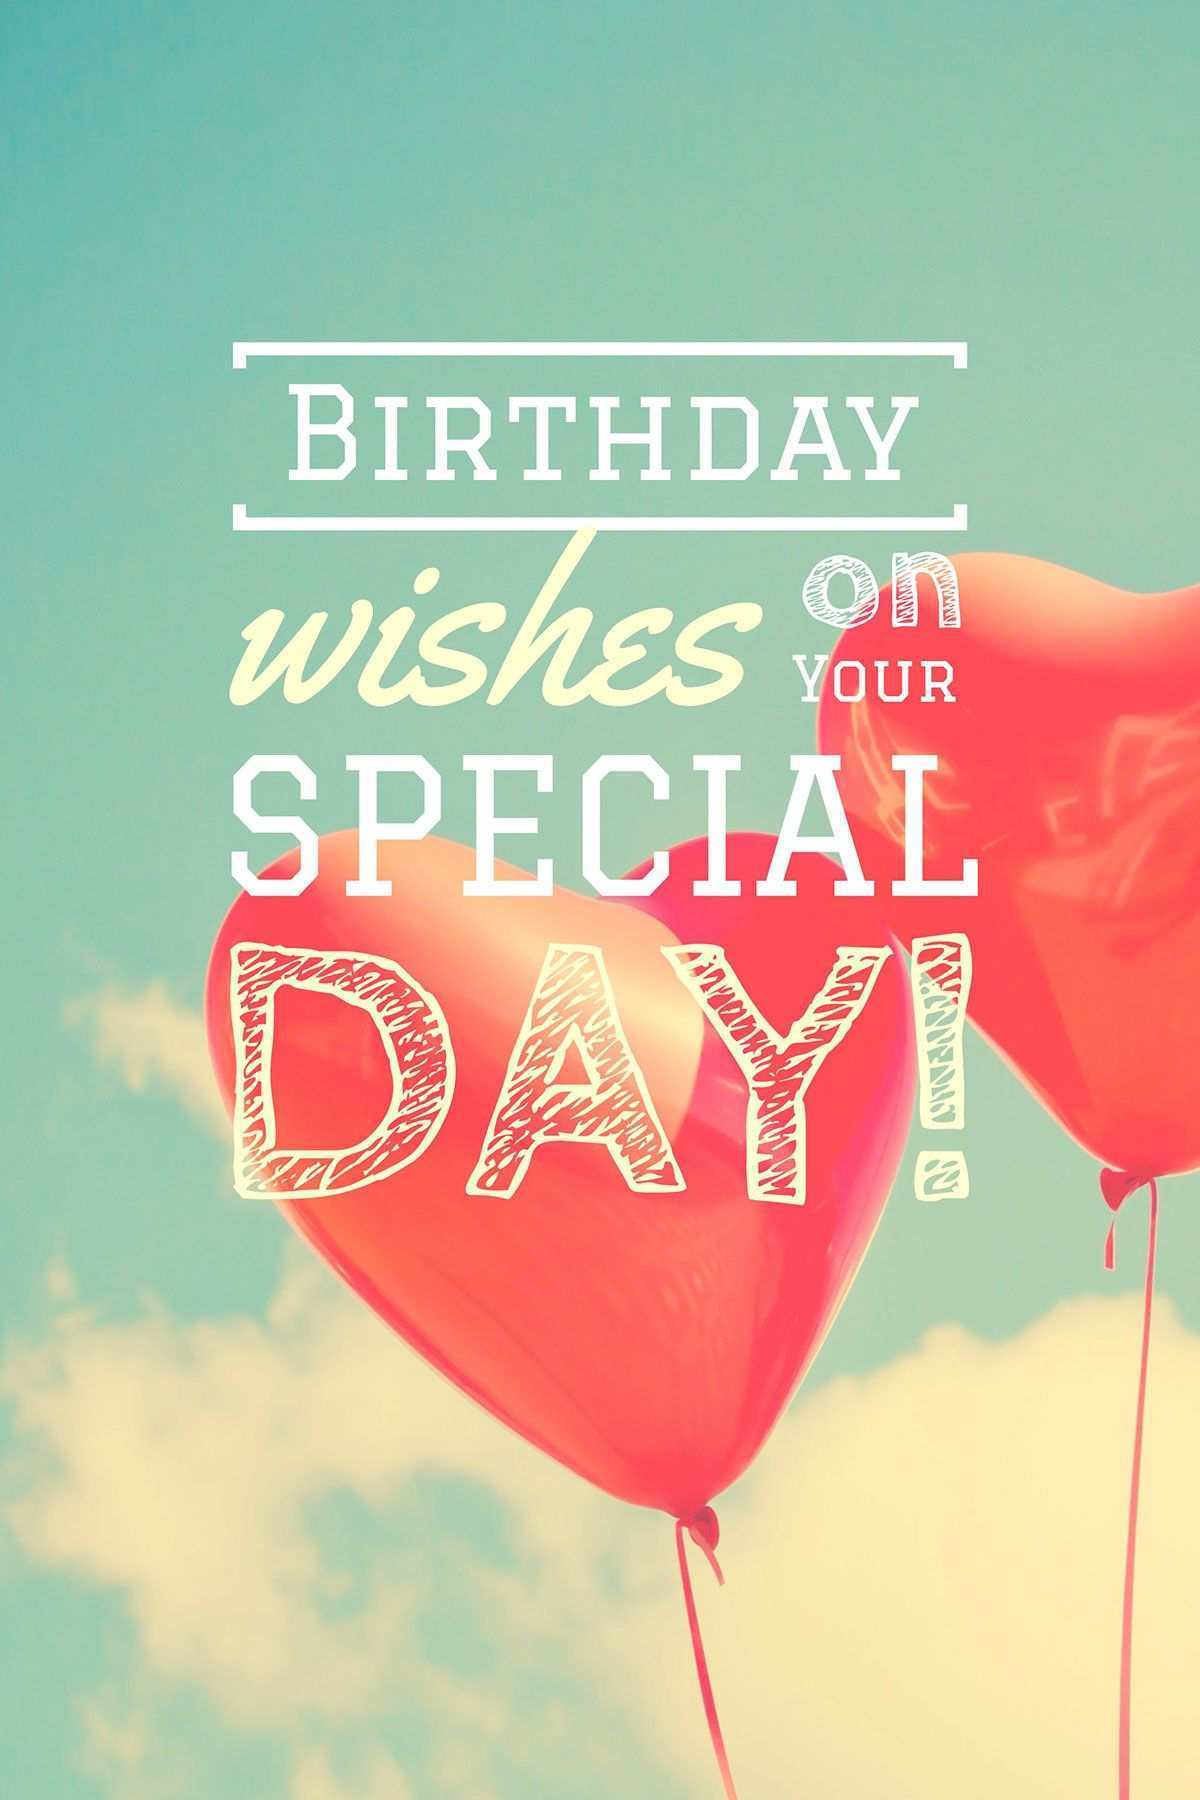 15 Report Birthday Card Maker Online With Photo Templates for Birthday Card Maker Online With Photo